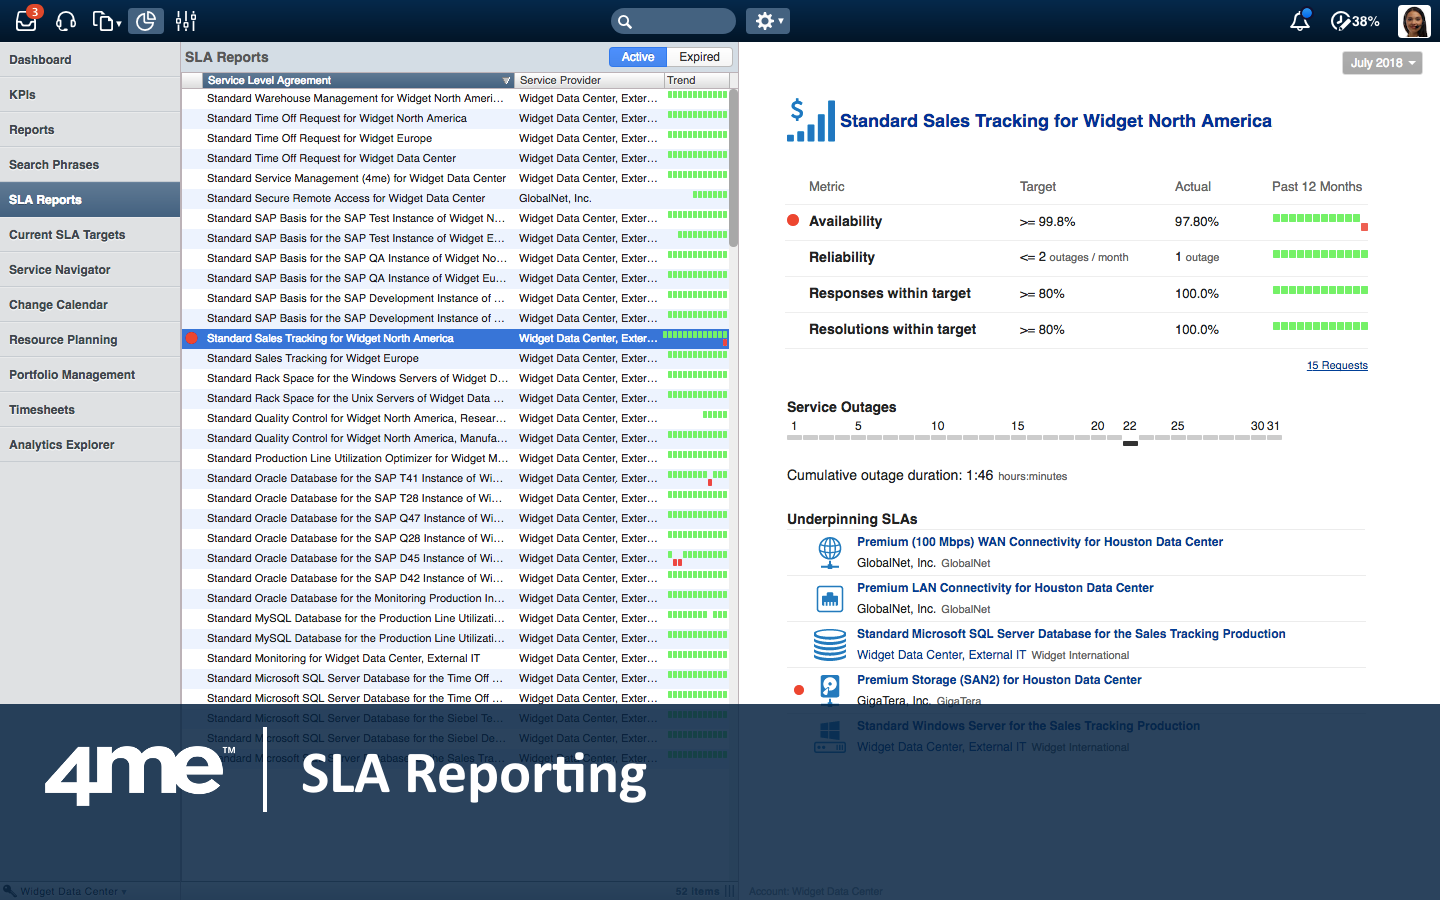 Drill down into detailed SLA reports and drill down further into the reports for the underpinning agreements.